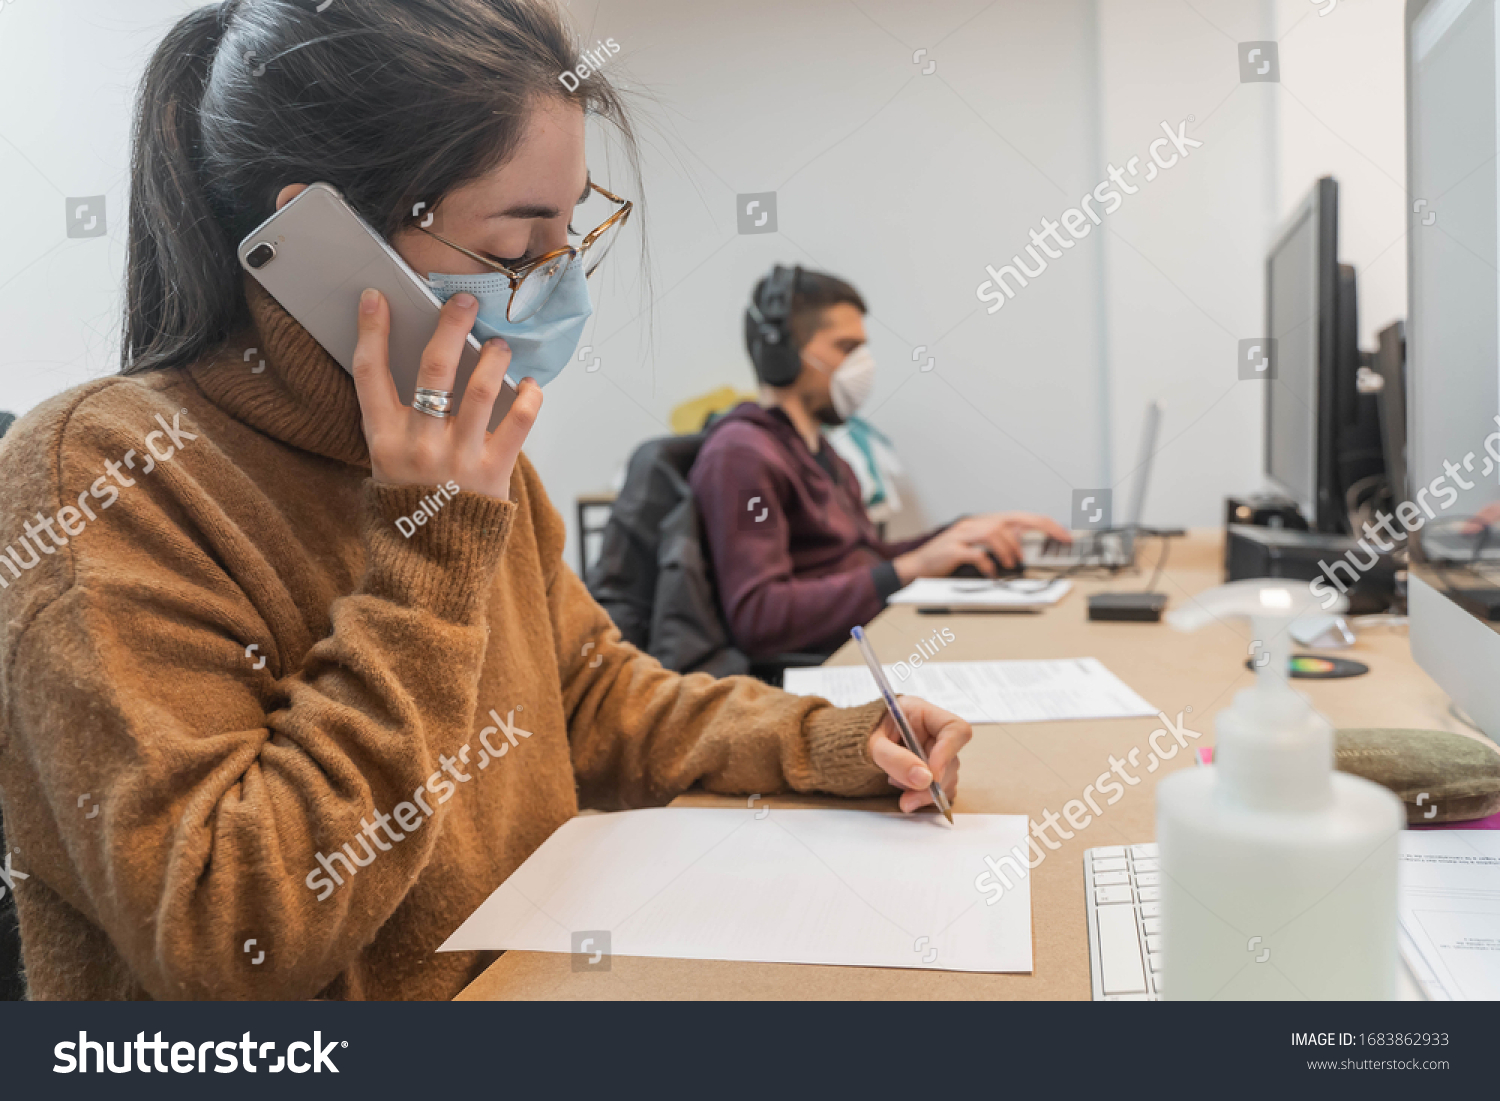 Coronavirus. Business workers working from home wearing protective mask. Small company in quarantine for coronavirus working from home with sanitizer gel. Small company concept. #1683862933